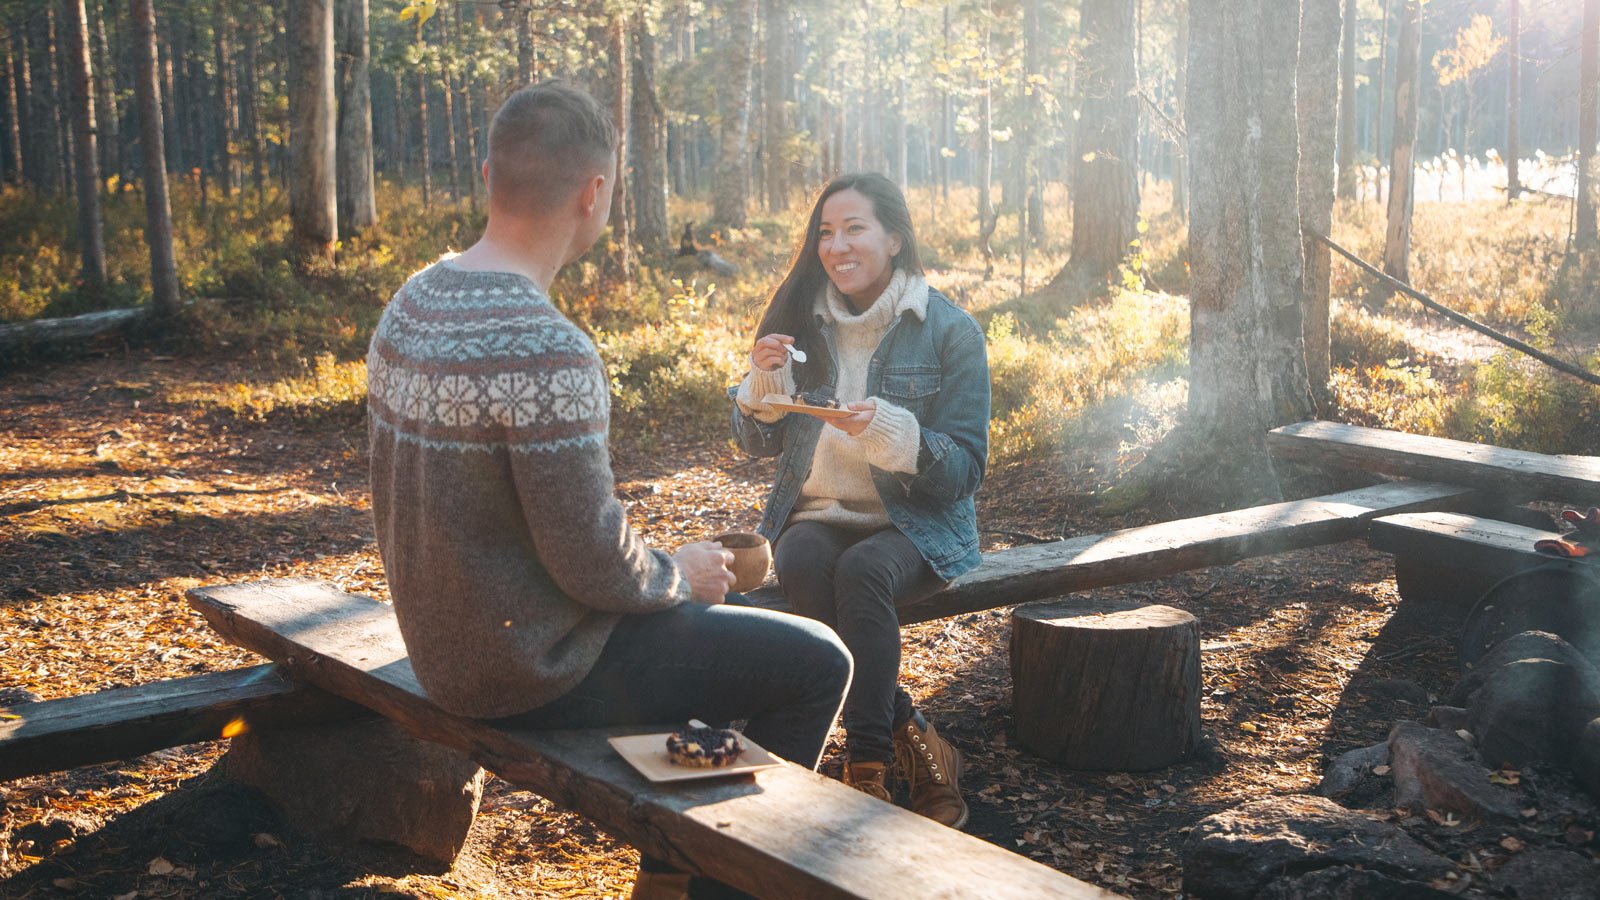 Two persons having a snack in the Pyhä-Häkki National Park